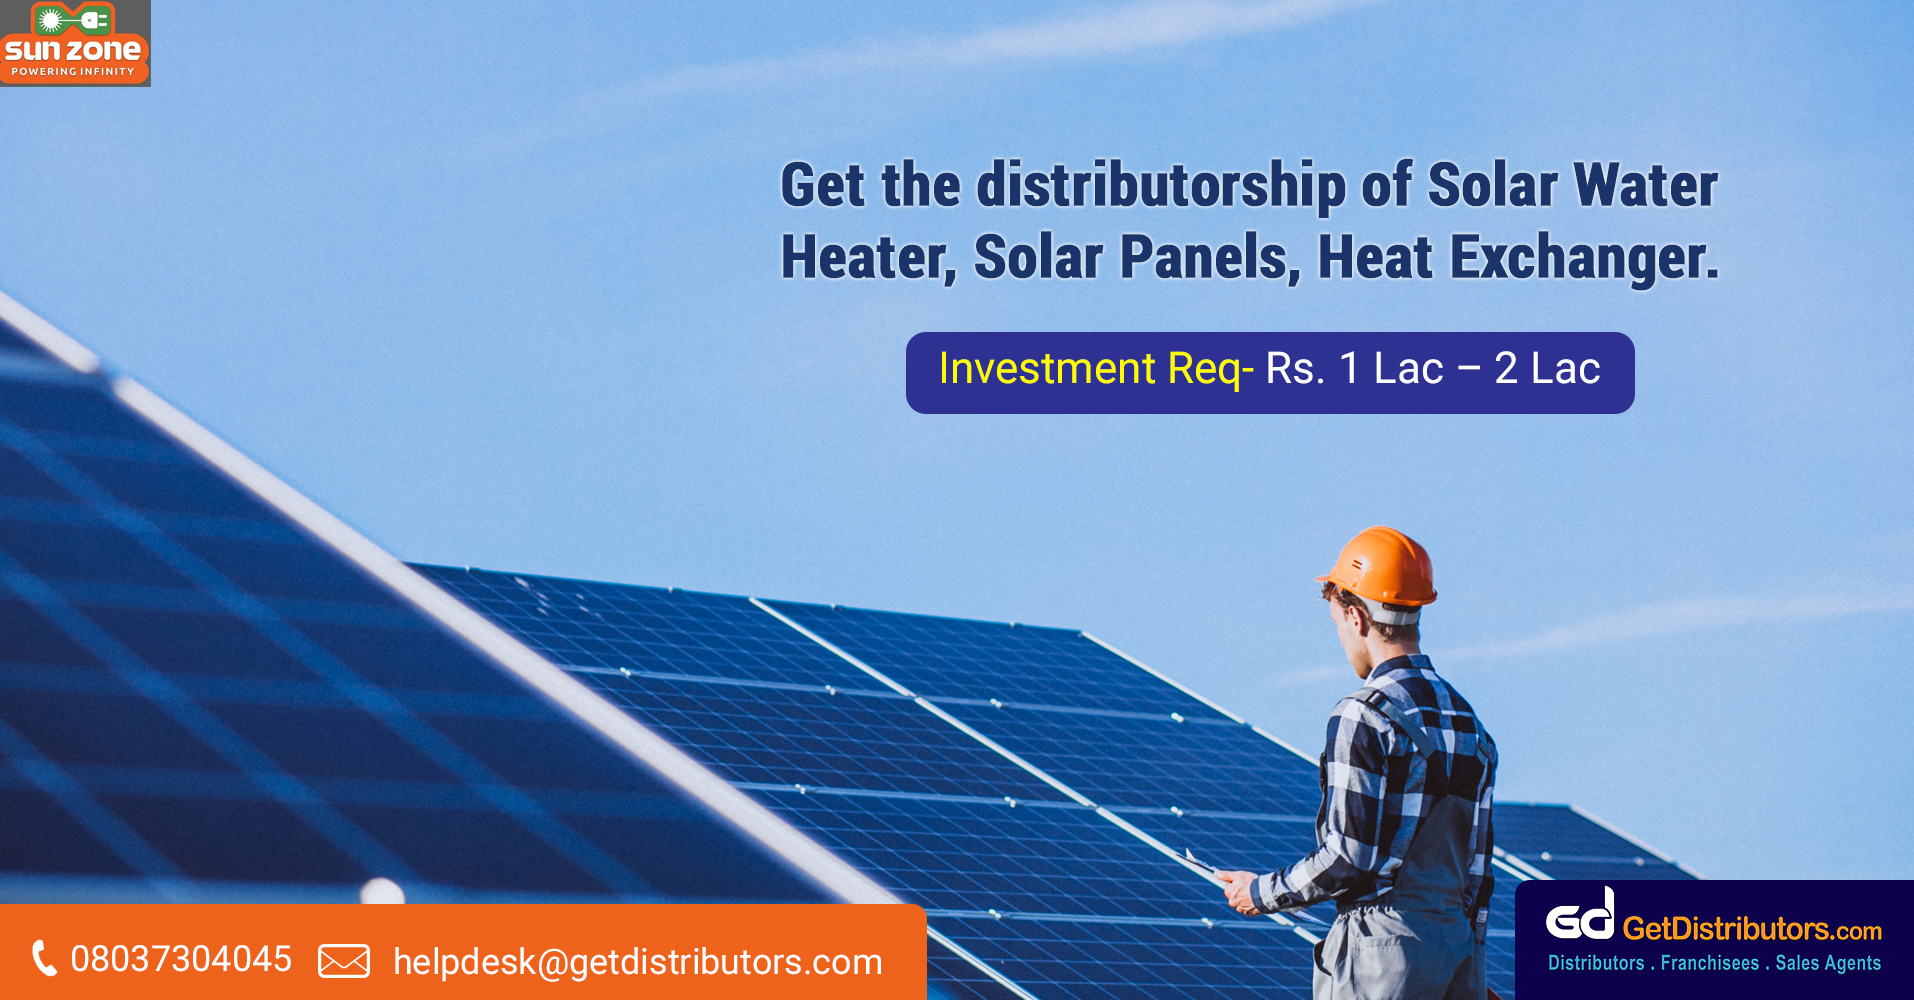 Eco-friendly solar products for distribution